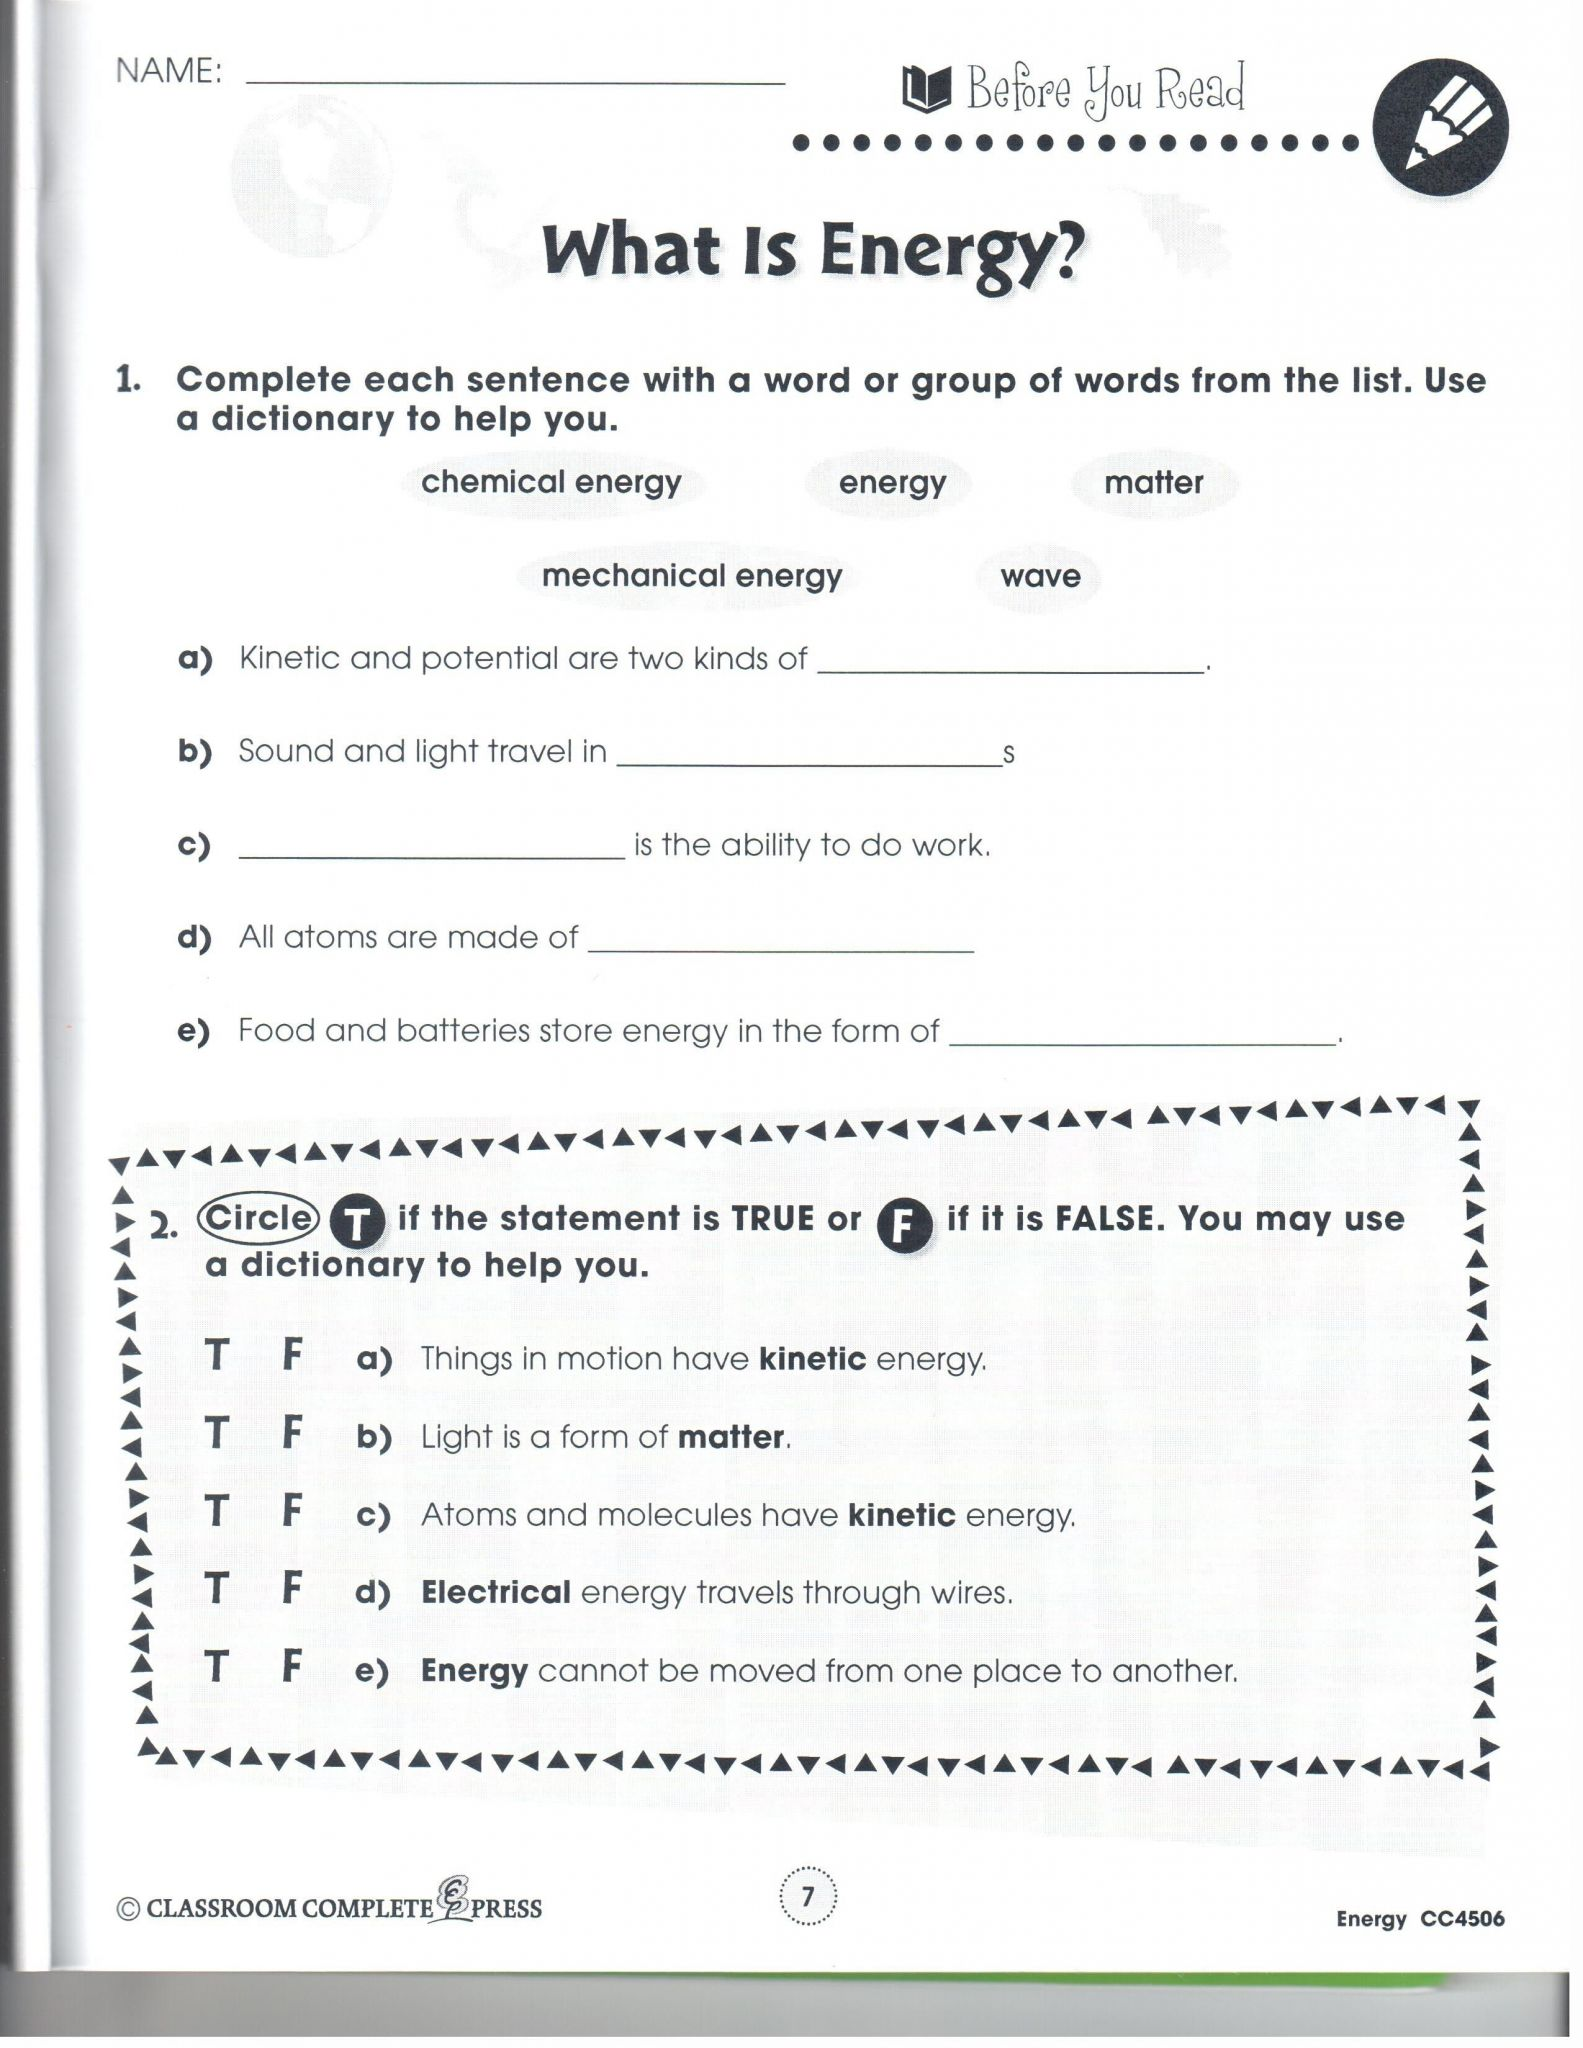 Heat Transfer Specific Heat Problems Worksheet